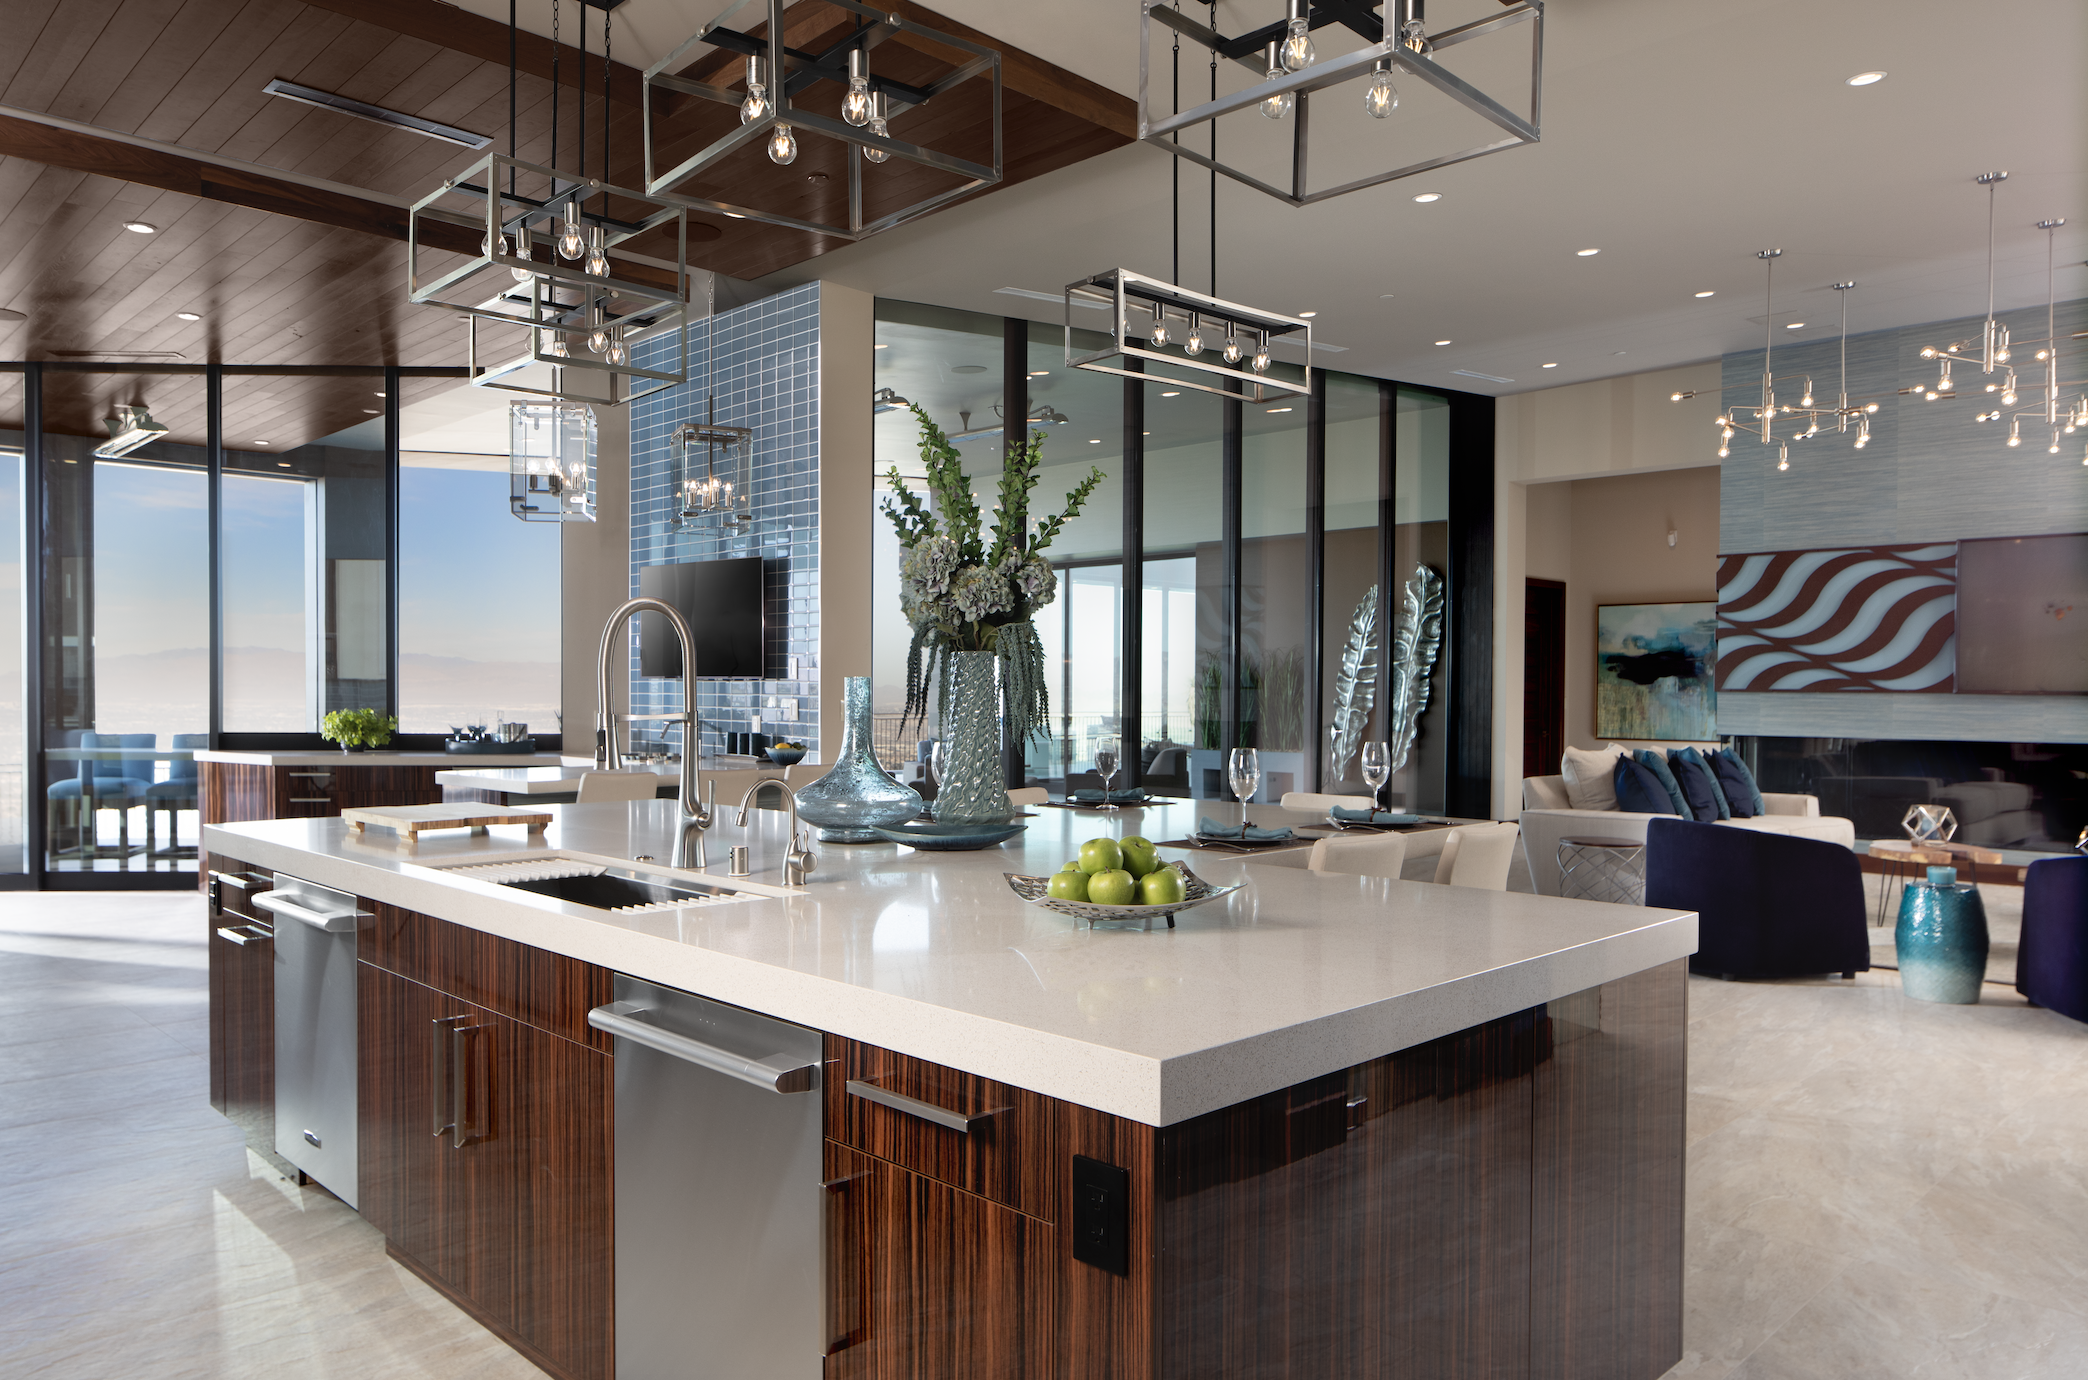 The New American Home spacious kitchen with central island